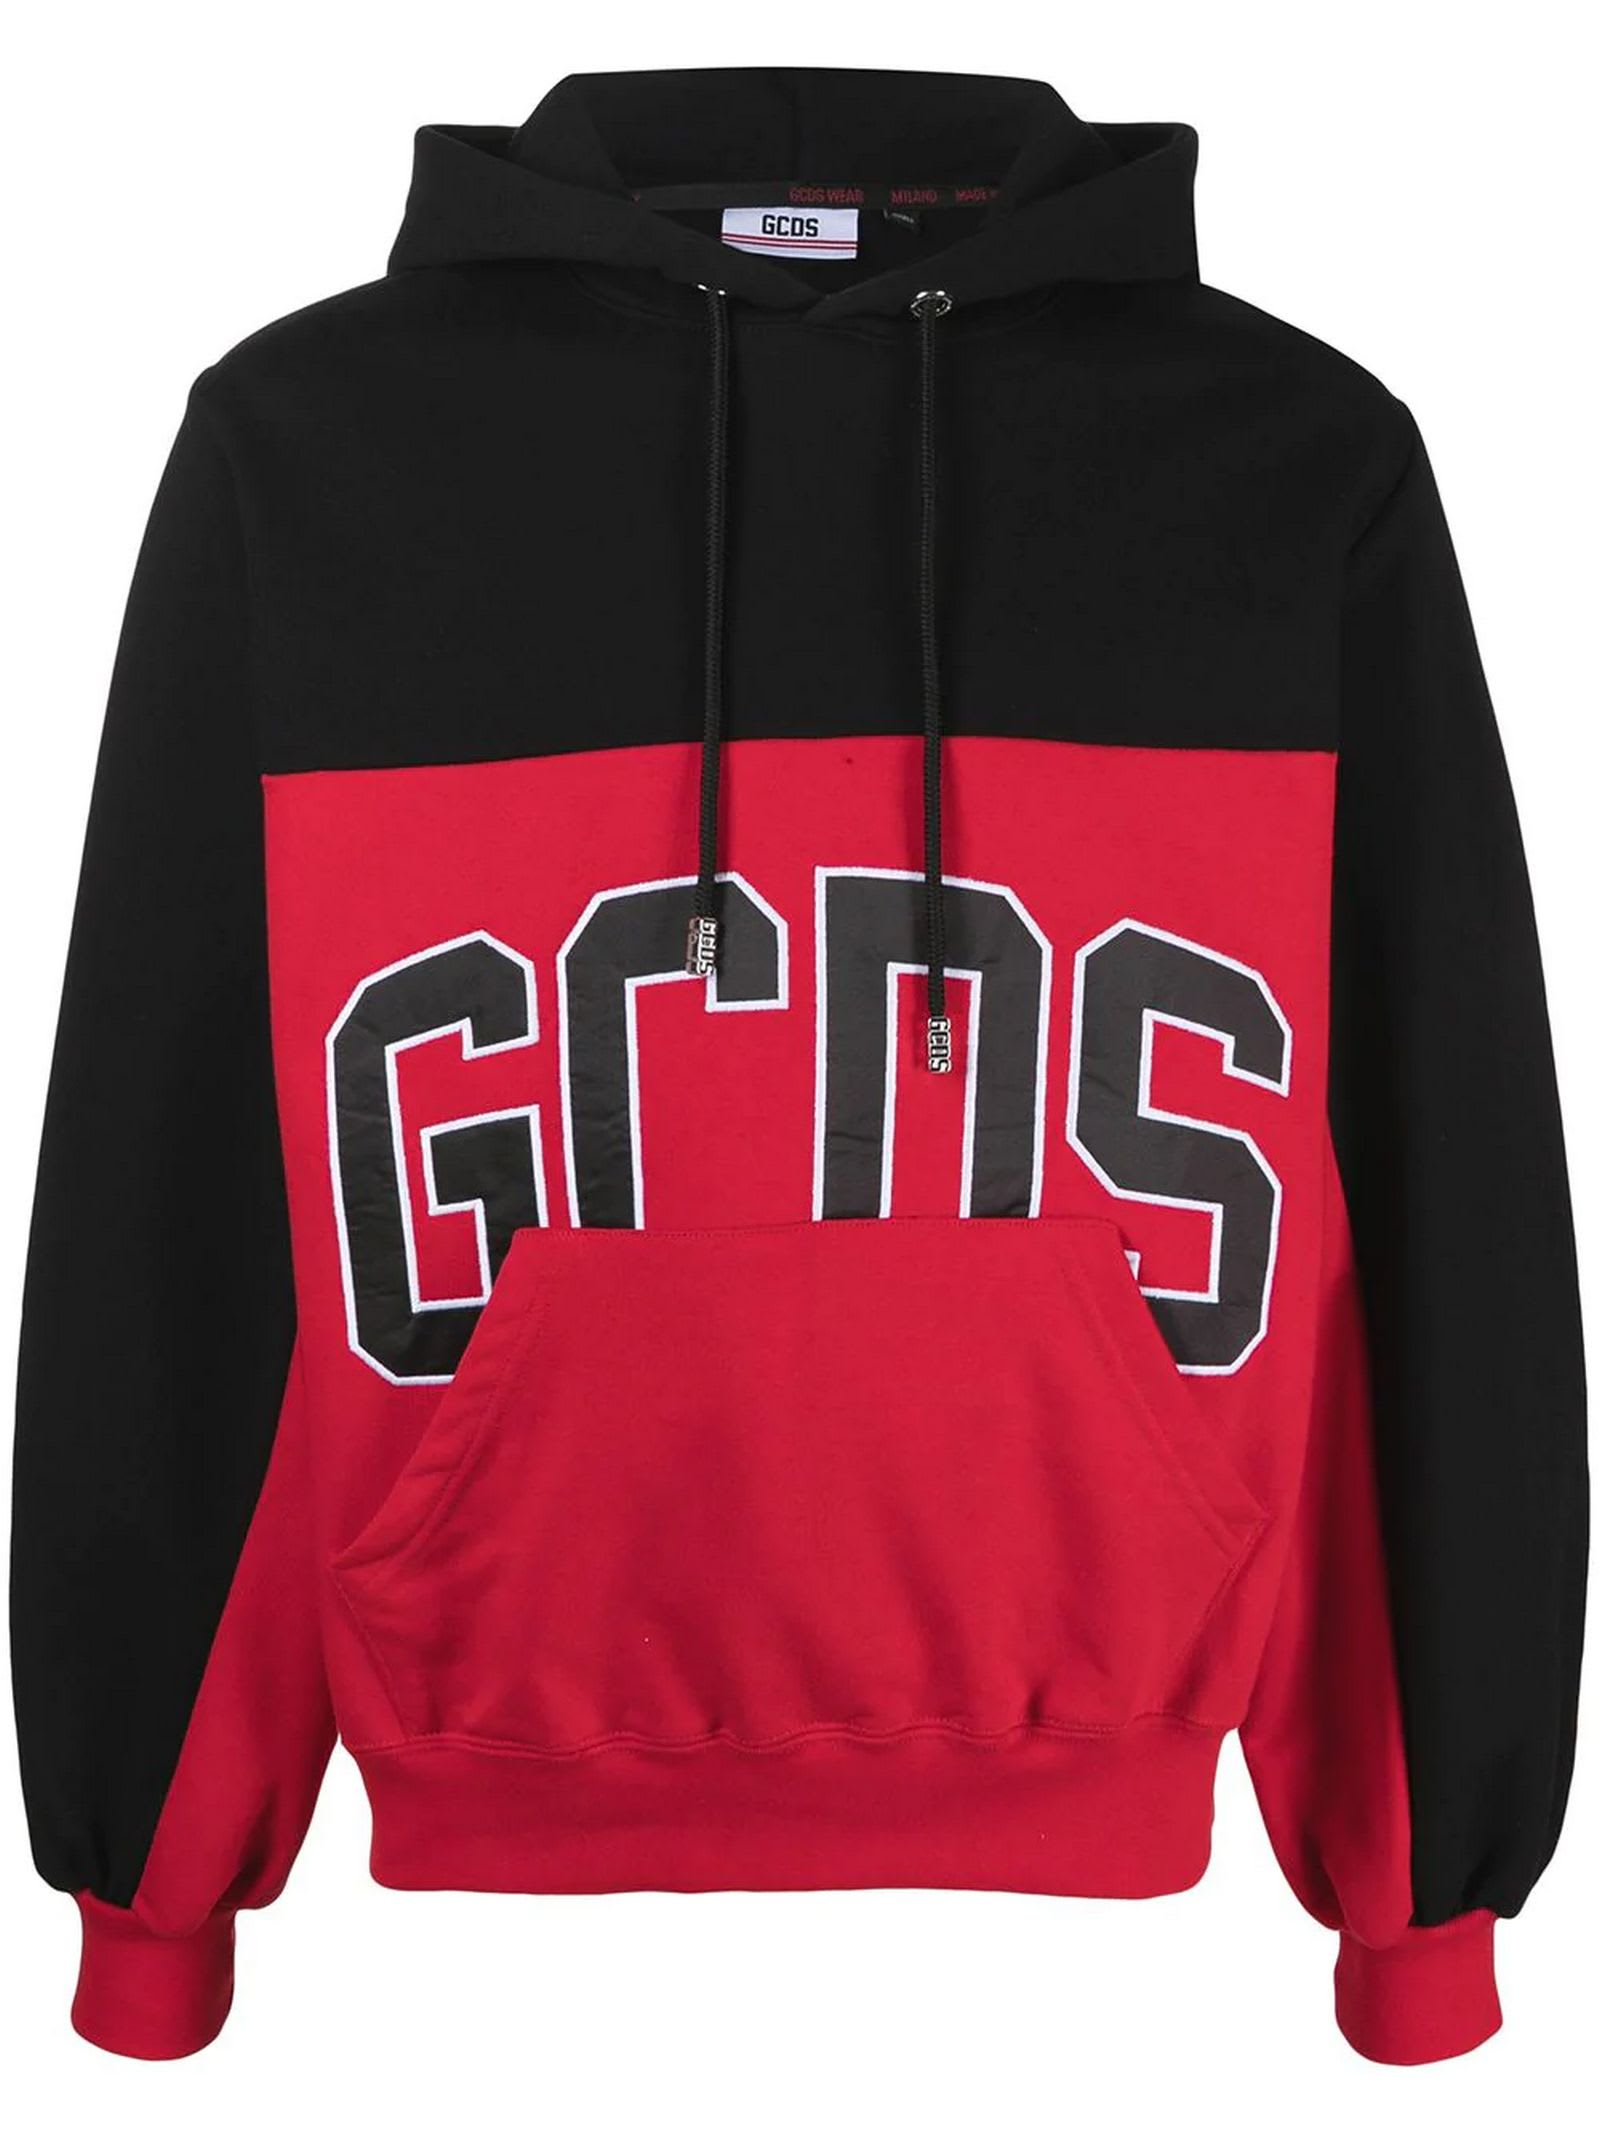 Black And Red Cotton Hoodie